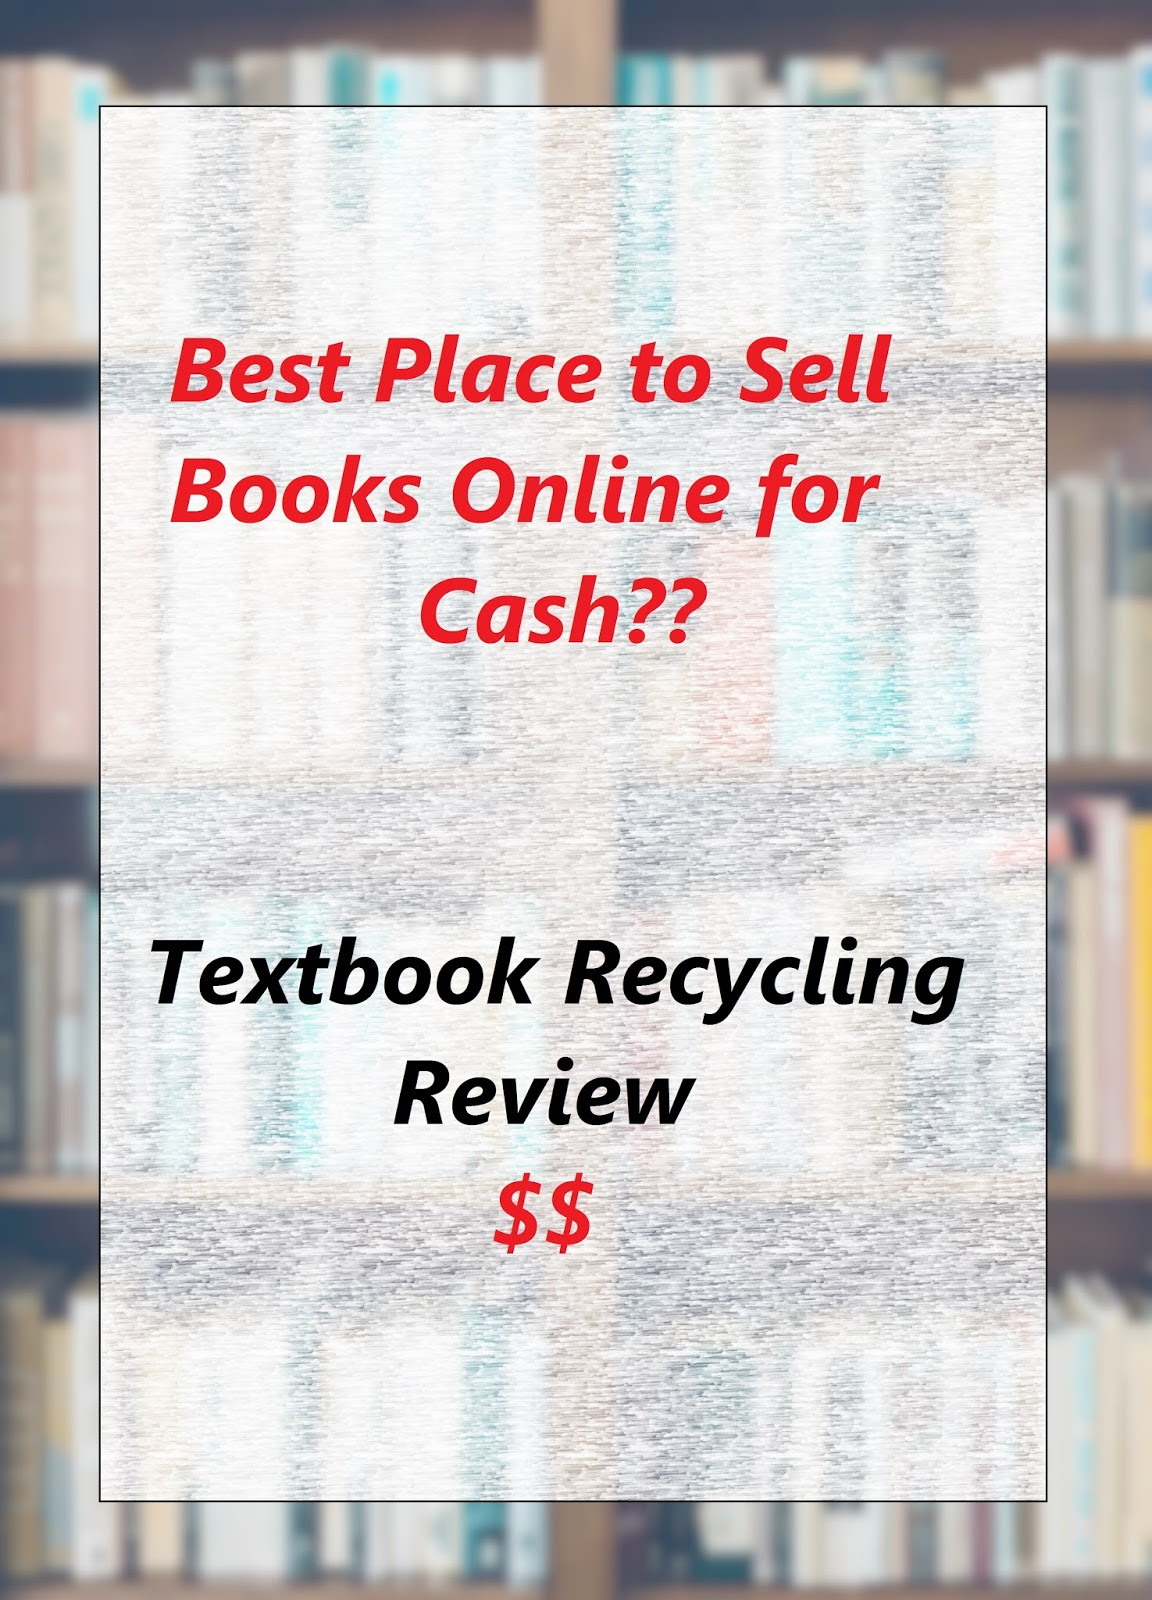 With college prices climbing, the last thing a student needs is to spend hundreds of dollars buying textbooks. Through textbook buyback programs, monitoring textbook prices, and offering used and new books, we have some of the cheapest textbooks around.